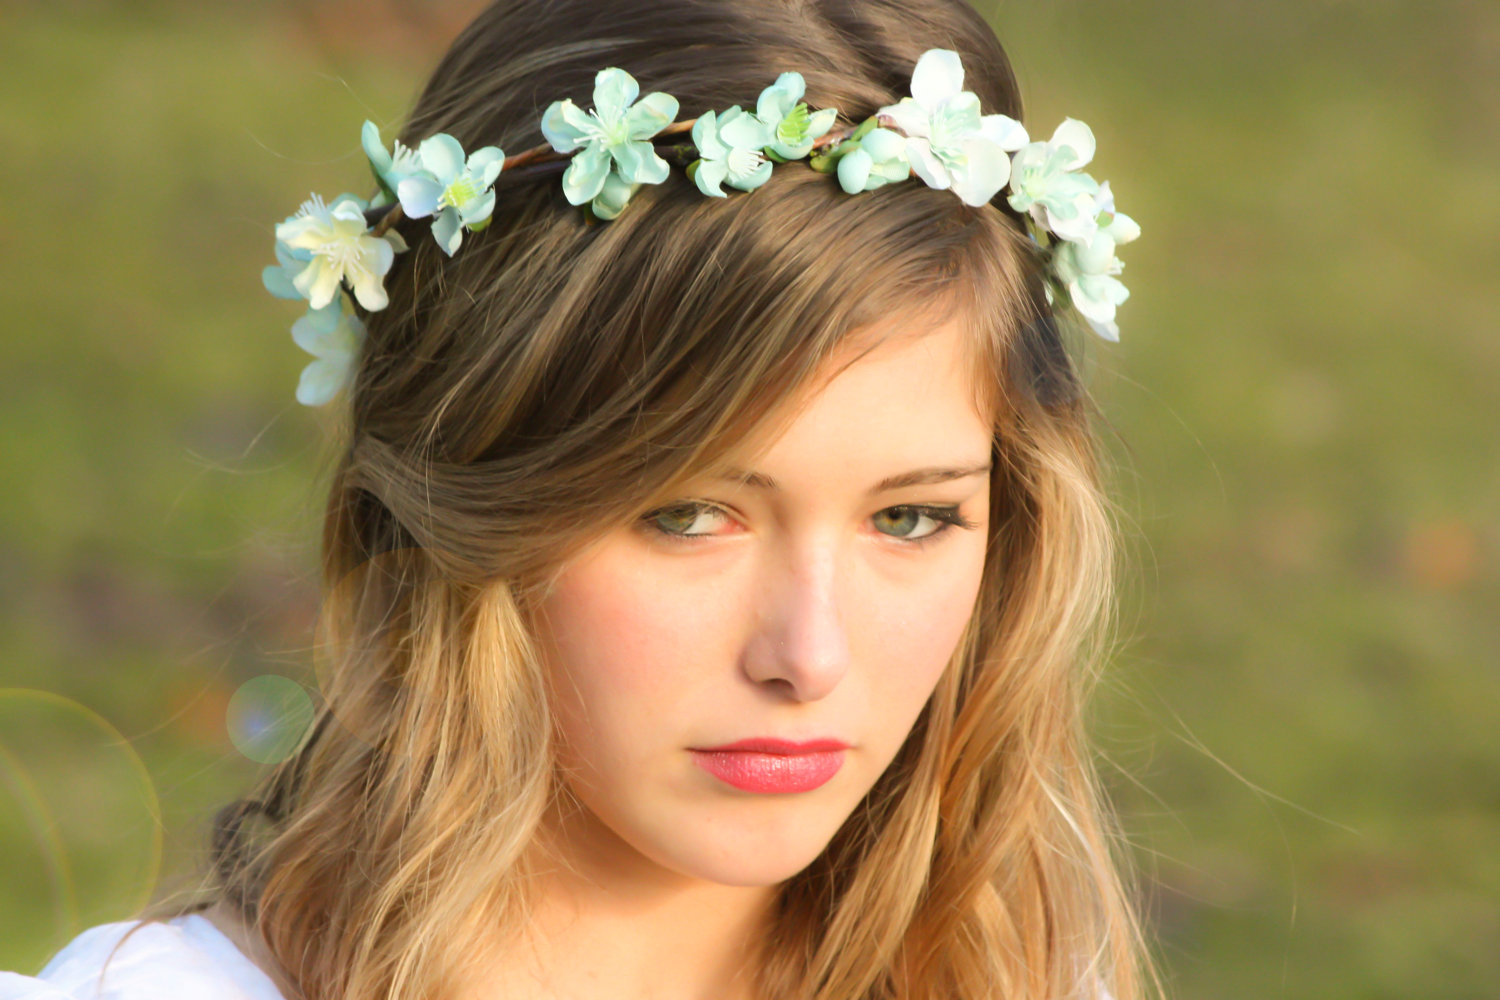 Bridal Flower Hair Wedding Accessories Headpiece Head Wreath In Seafoam